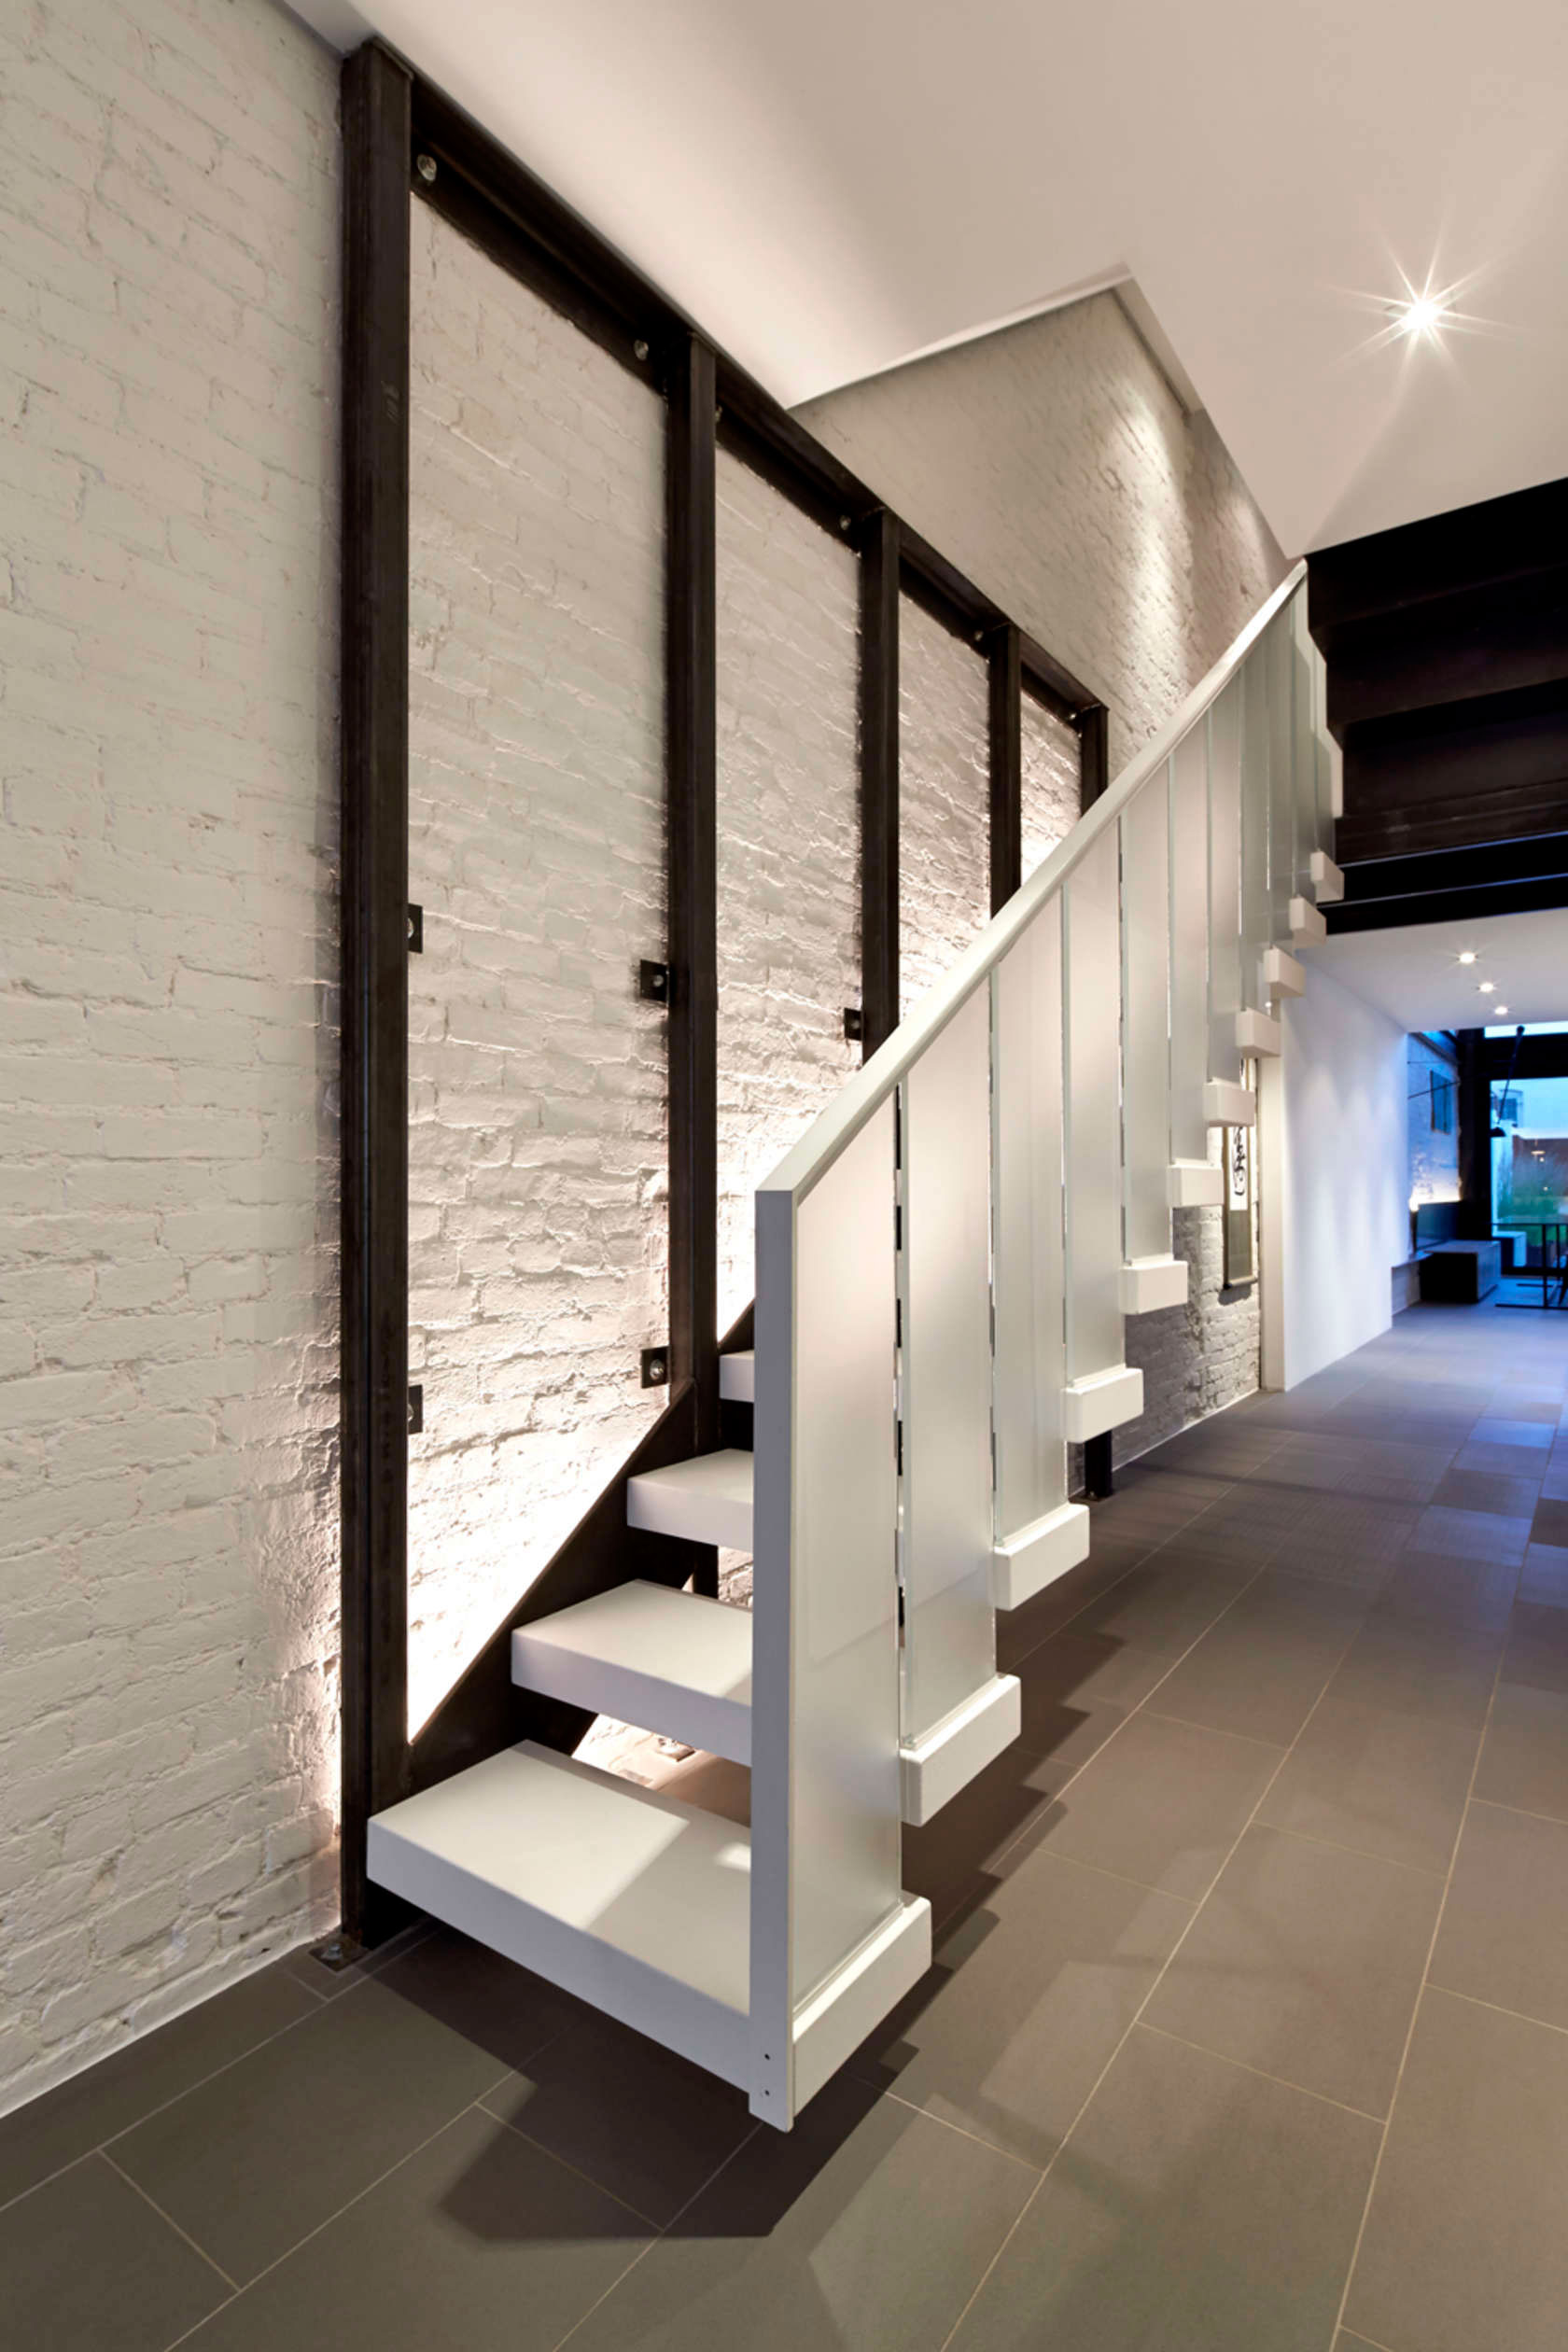 Salt and Pepper House in Washington, D.C. by KUBE Architecture-12